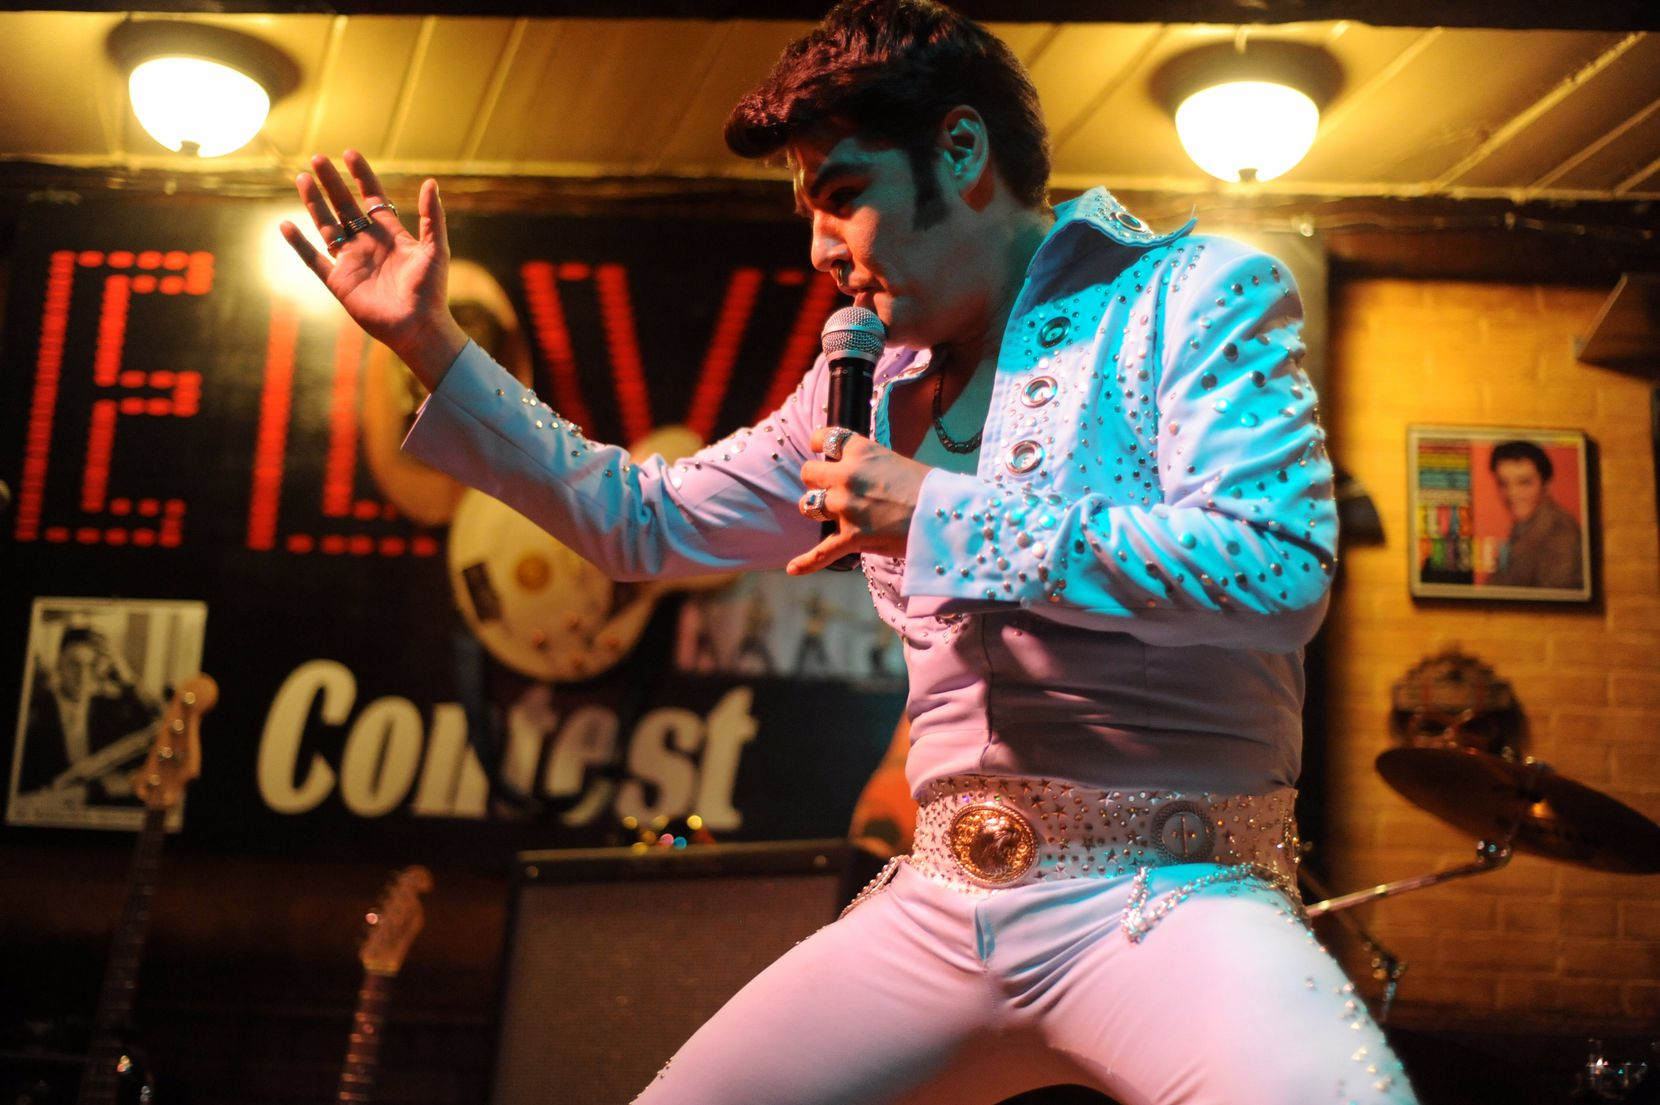 Oak Cliff's El Ranchito pays tribute to Elvis Presley in January and August to celebrate his birth and untimely passing.